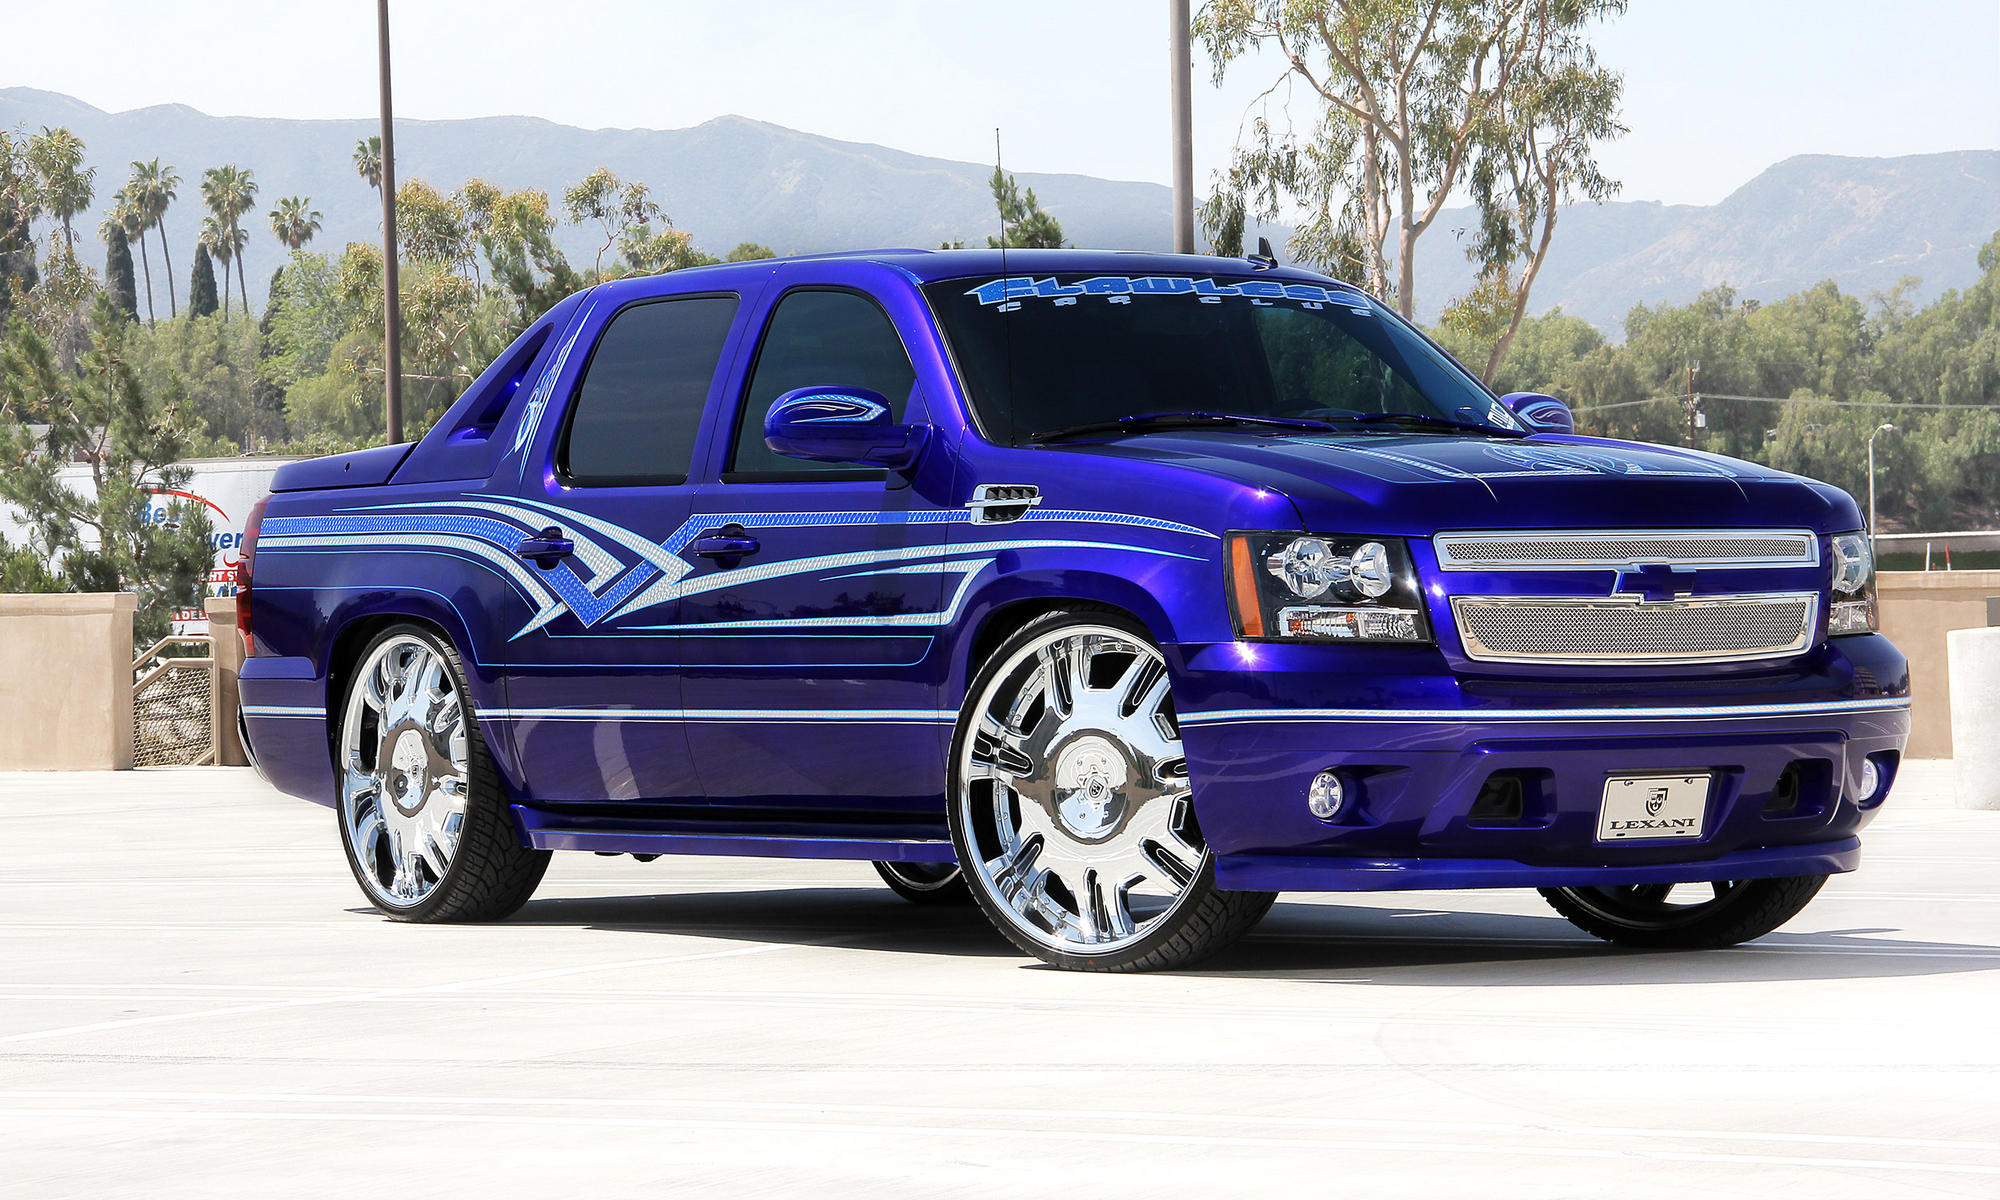 Blue-custom-Chevy-Avalanche-with-chrome-radiant-wheels-wallpaper-wp4604315-1